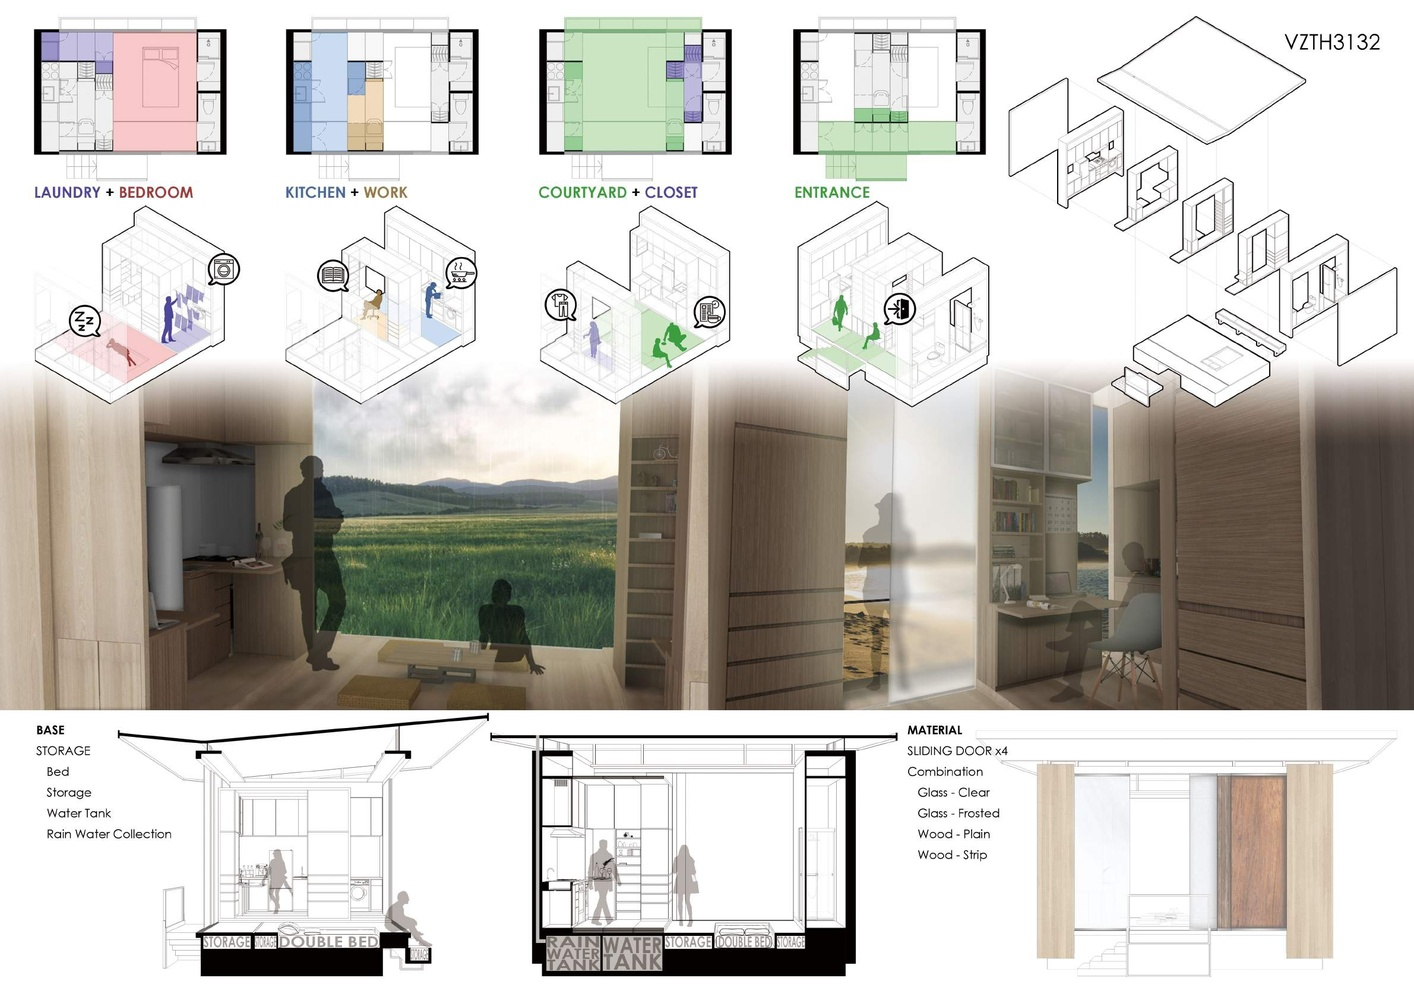 House design competition - Tiny House Design Competition Winners Revealed Courtesy Of Volume Zero